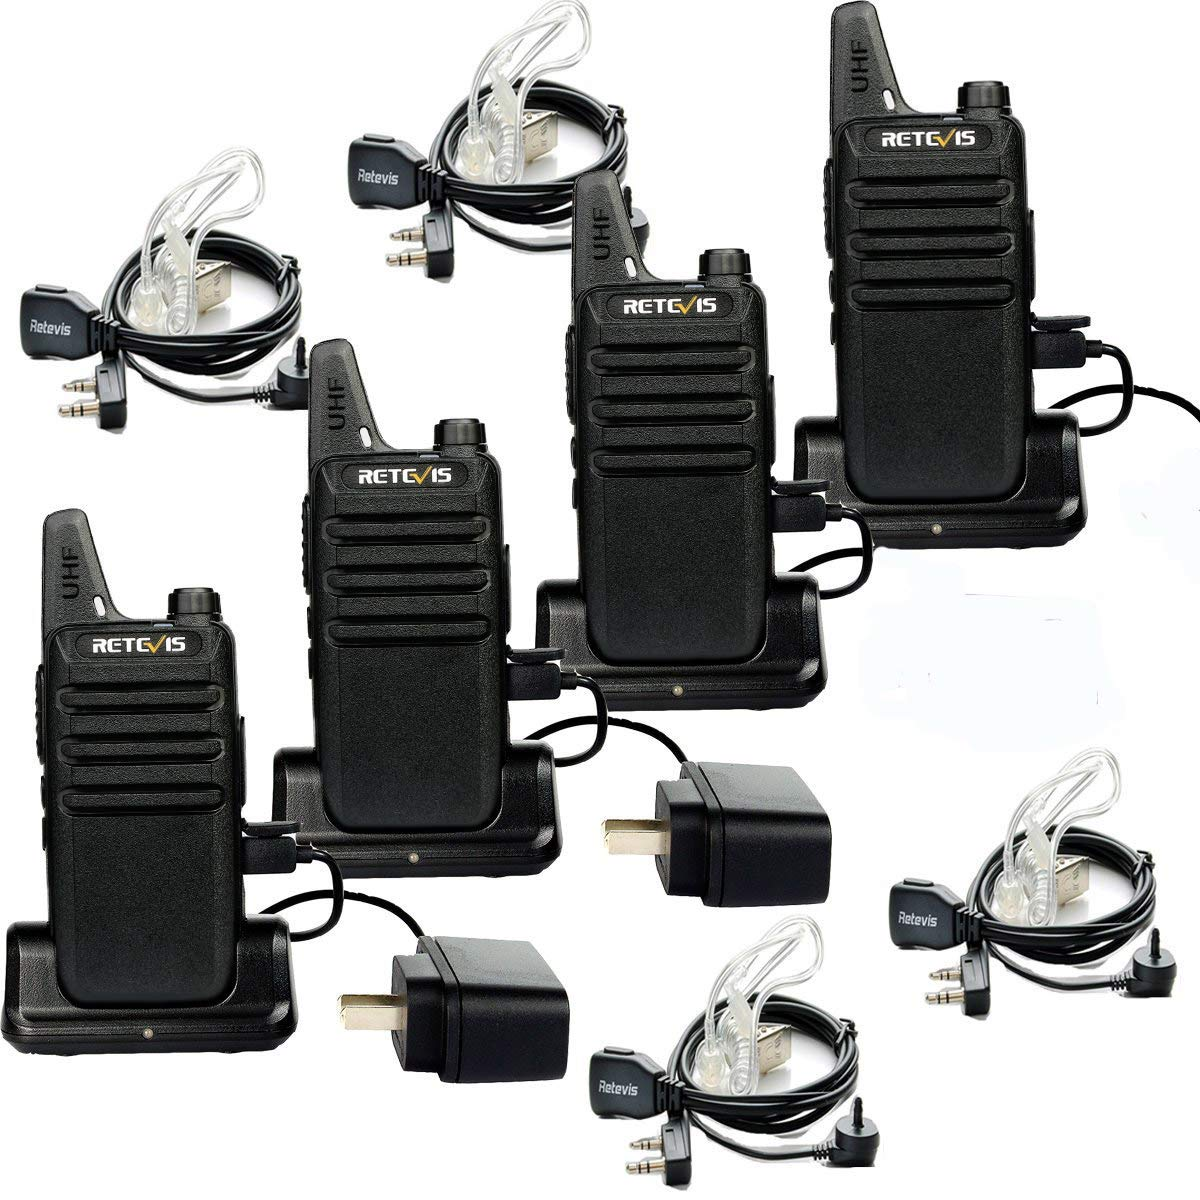 Retevis RT22 Walkie Talkies Rechargeable 16 CH FRS VOX Two Way Radios with USB Charging Base 4 Pack and 2 Pin Covert Air Acoustic Earpiece 4 Pack